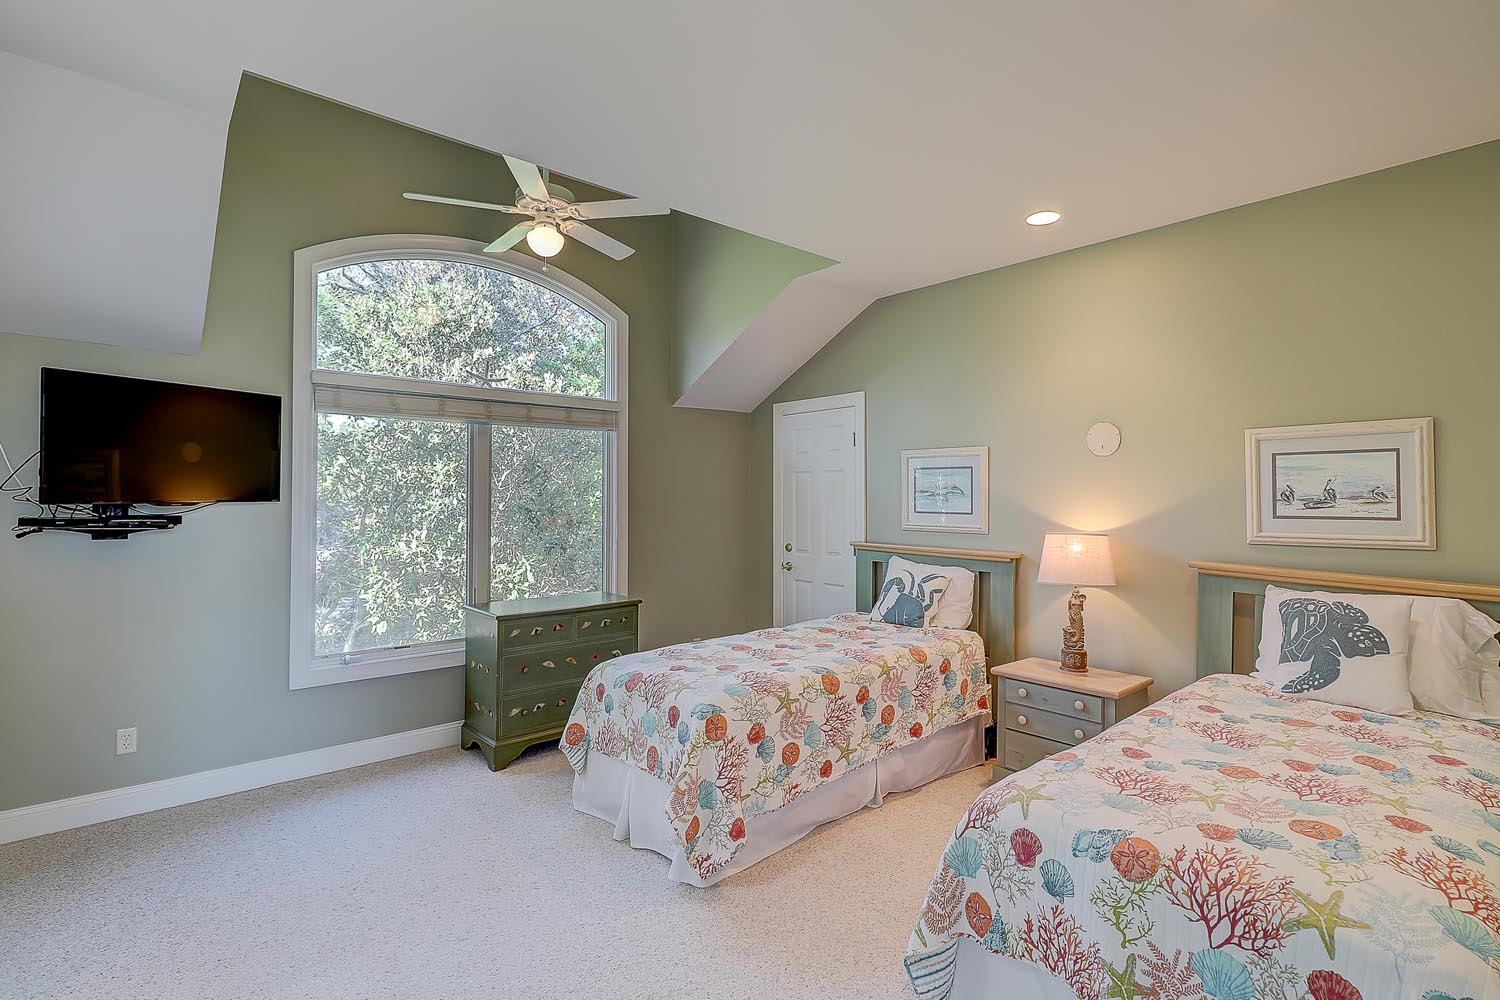 Upstairs bedroom with one queen bed and one twin bed, wall-mounted flat panel TV and access to jack and jill bath shared with bedroom 5